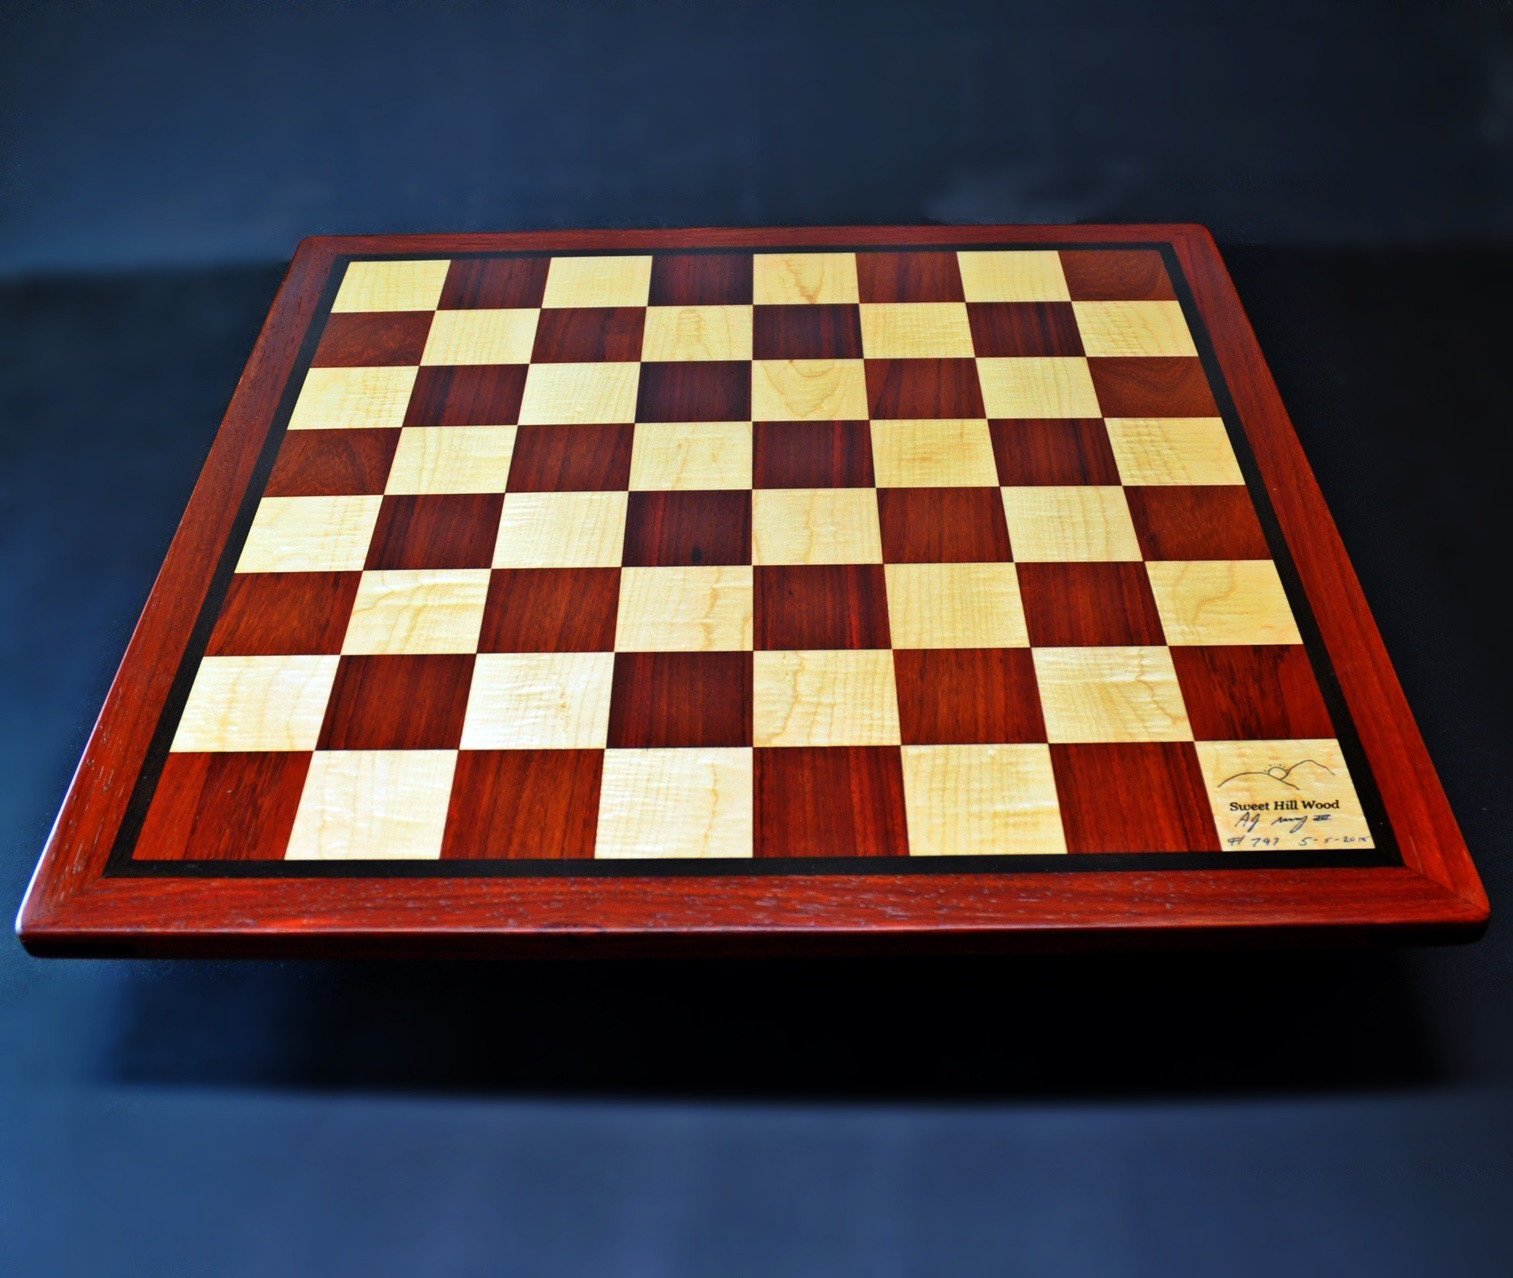 Padauk and Maple Chessboard 2½ inch squares and Wenge border image 4